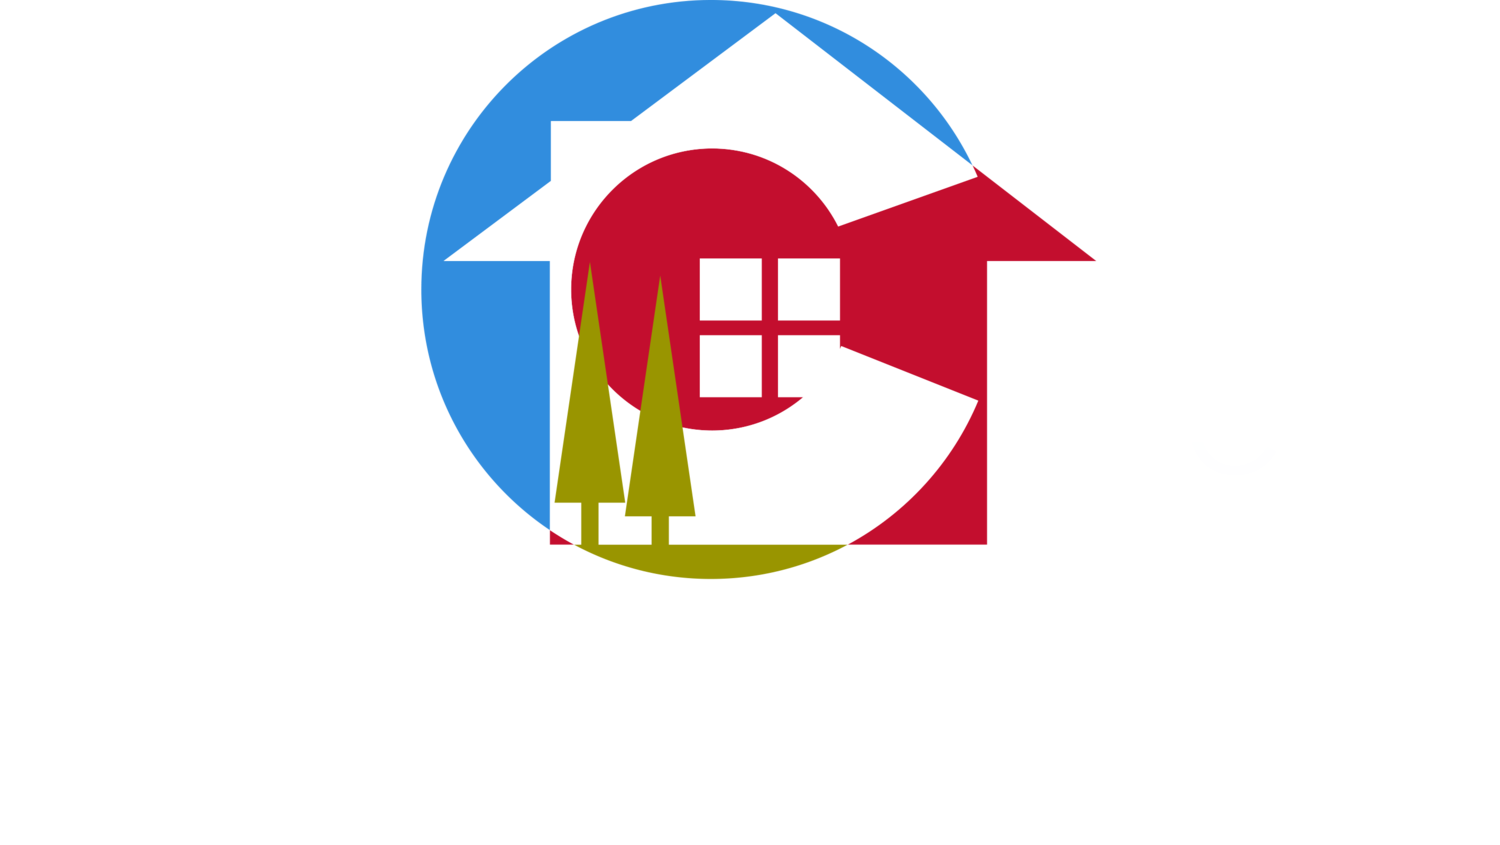 The Blue Sky Home Group